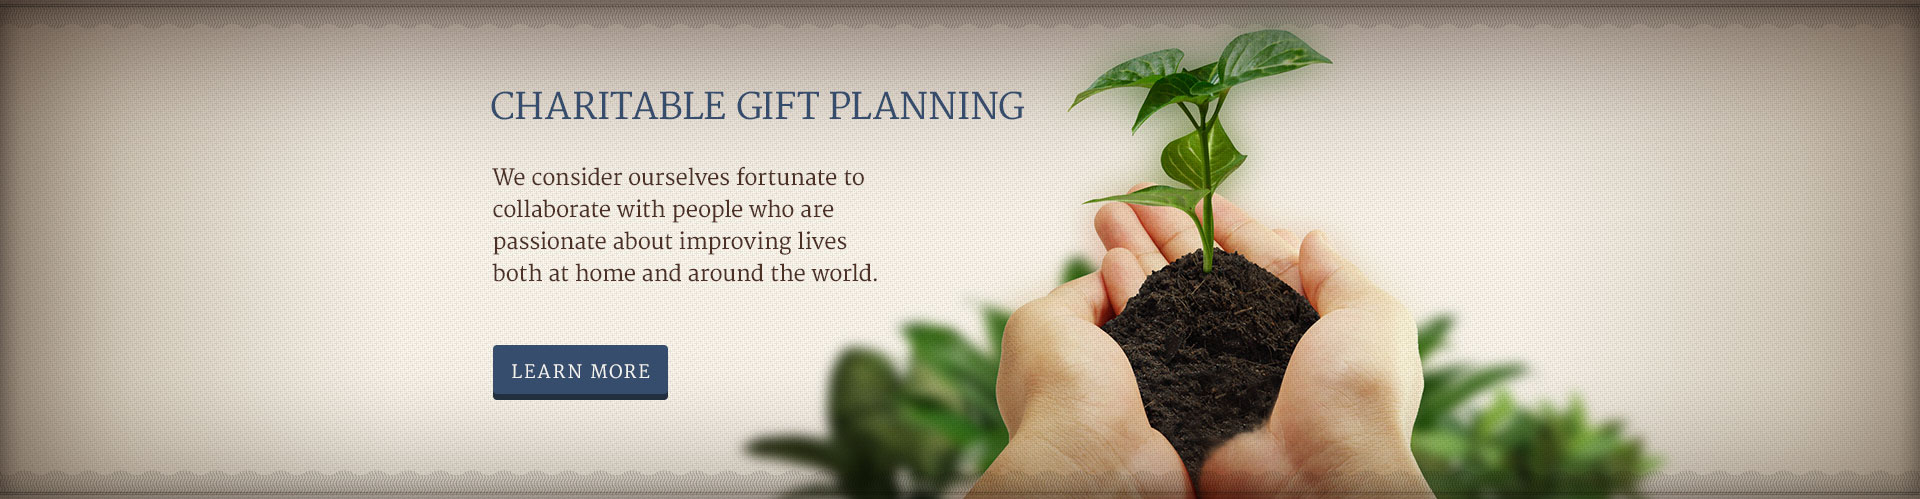 CHARITABLE GIFT PLANNING - We consider ourselves fortunate to collaborate with people who are passionate about improving lives both at home and around the world.